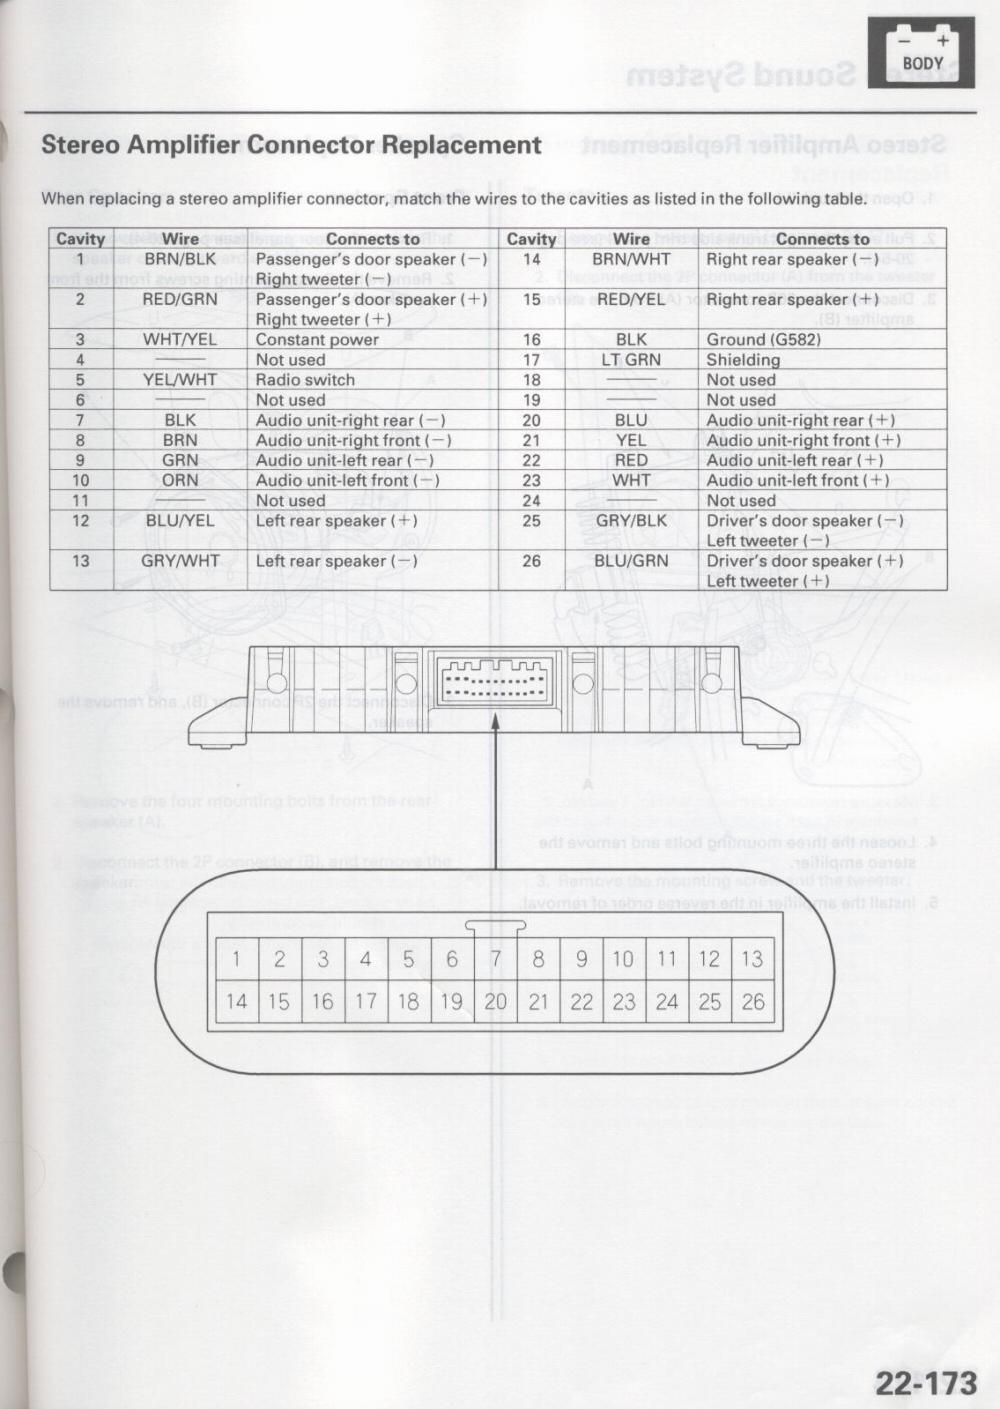 Acura 2002 TL car stereo amplifier wiring diagram harness acura mdx stereo wiring diagram wiring diagram simonand 1998 acura integra stereo wiring diagram at alyssarenee.co